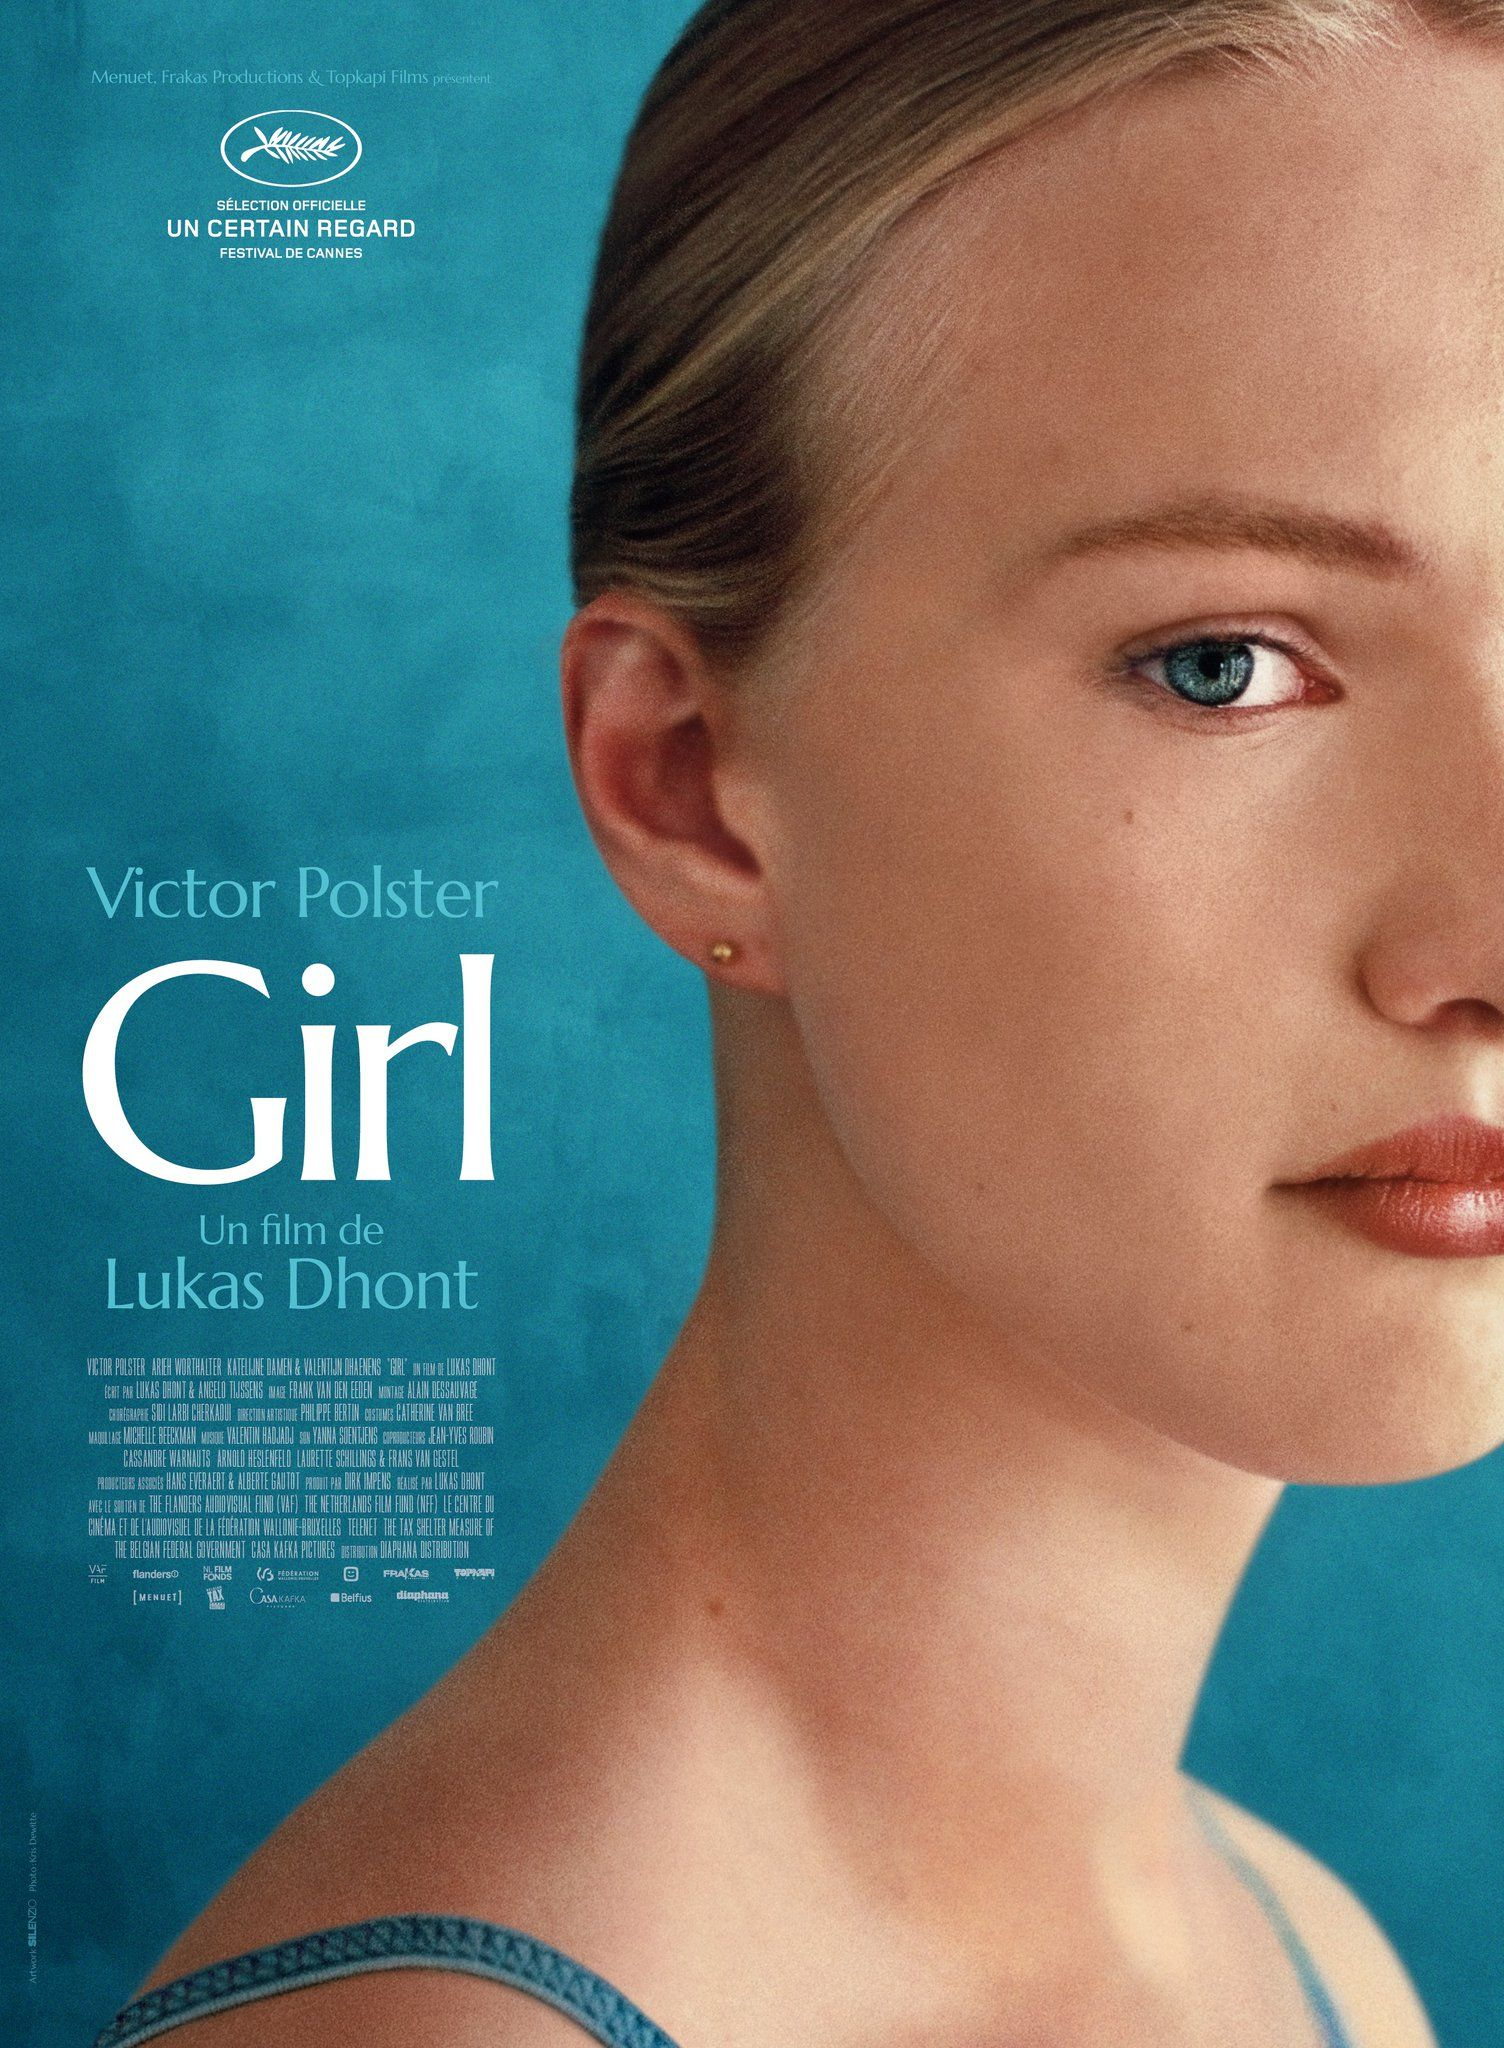 Girl by Lukas Dhont #Cannes2018 Un Certain Regard. Poster.